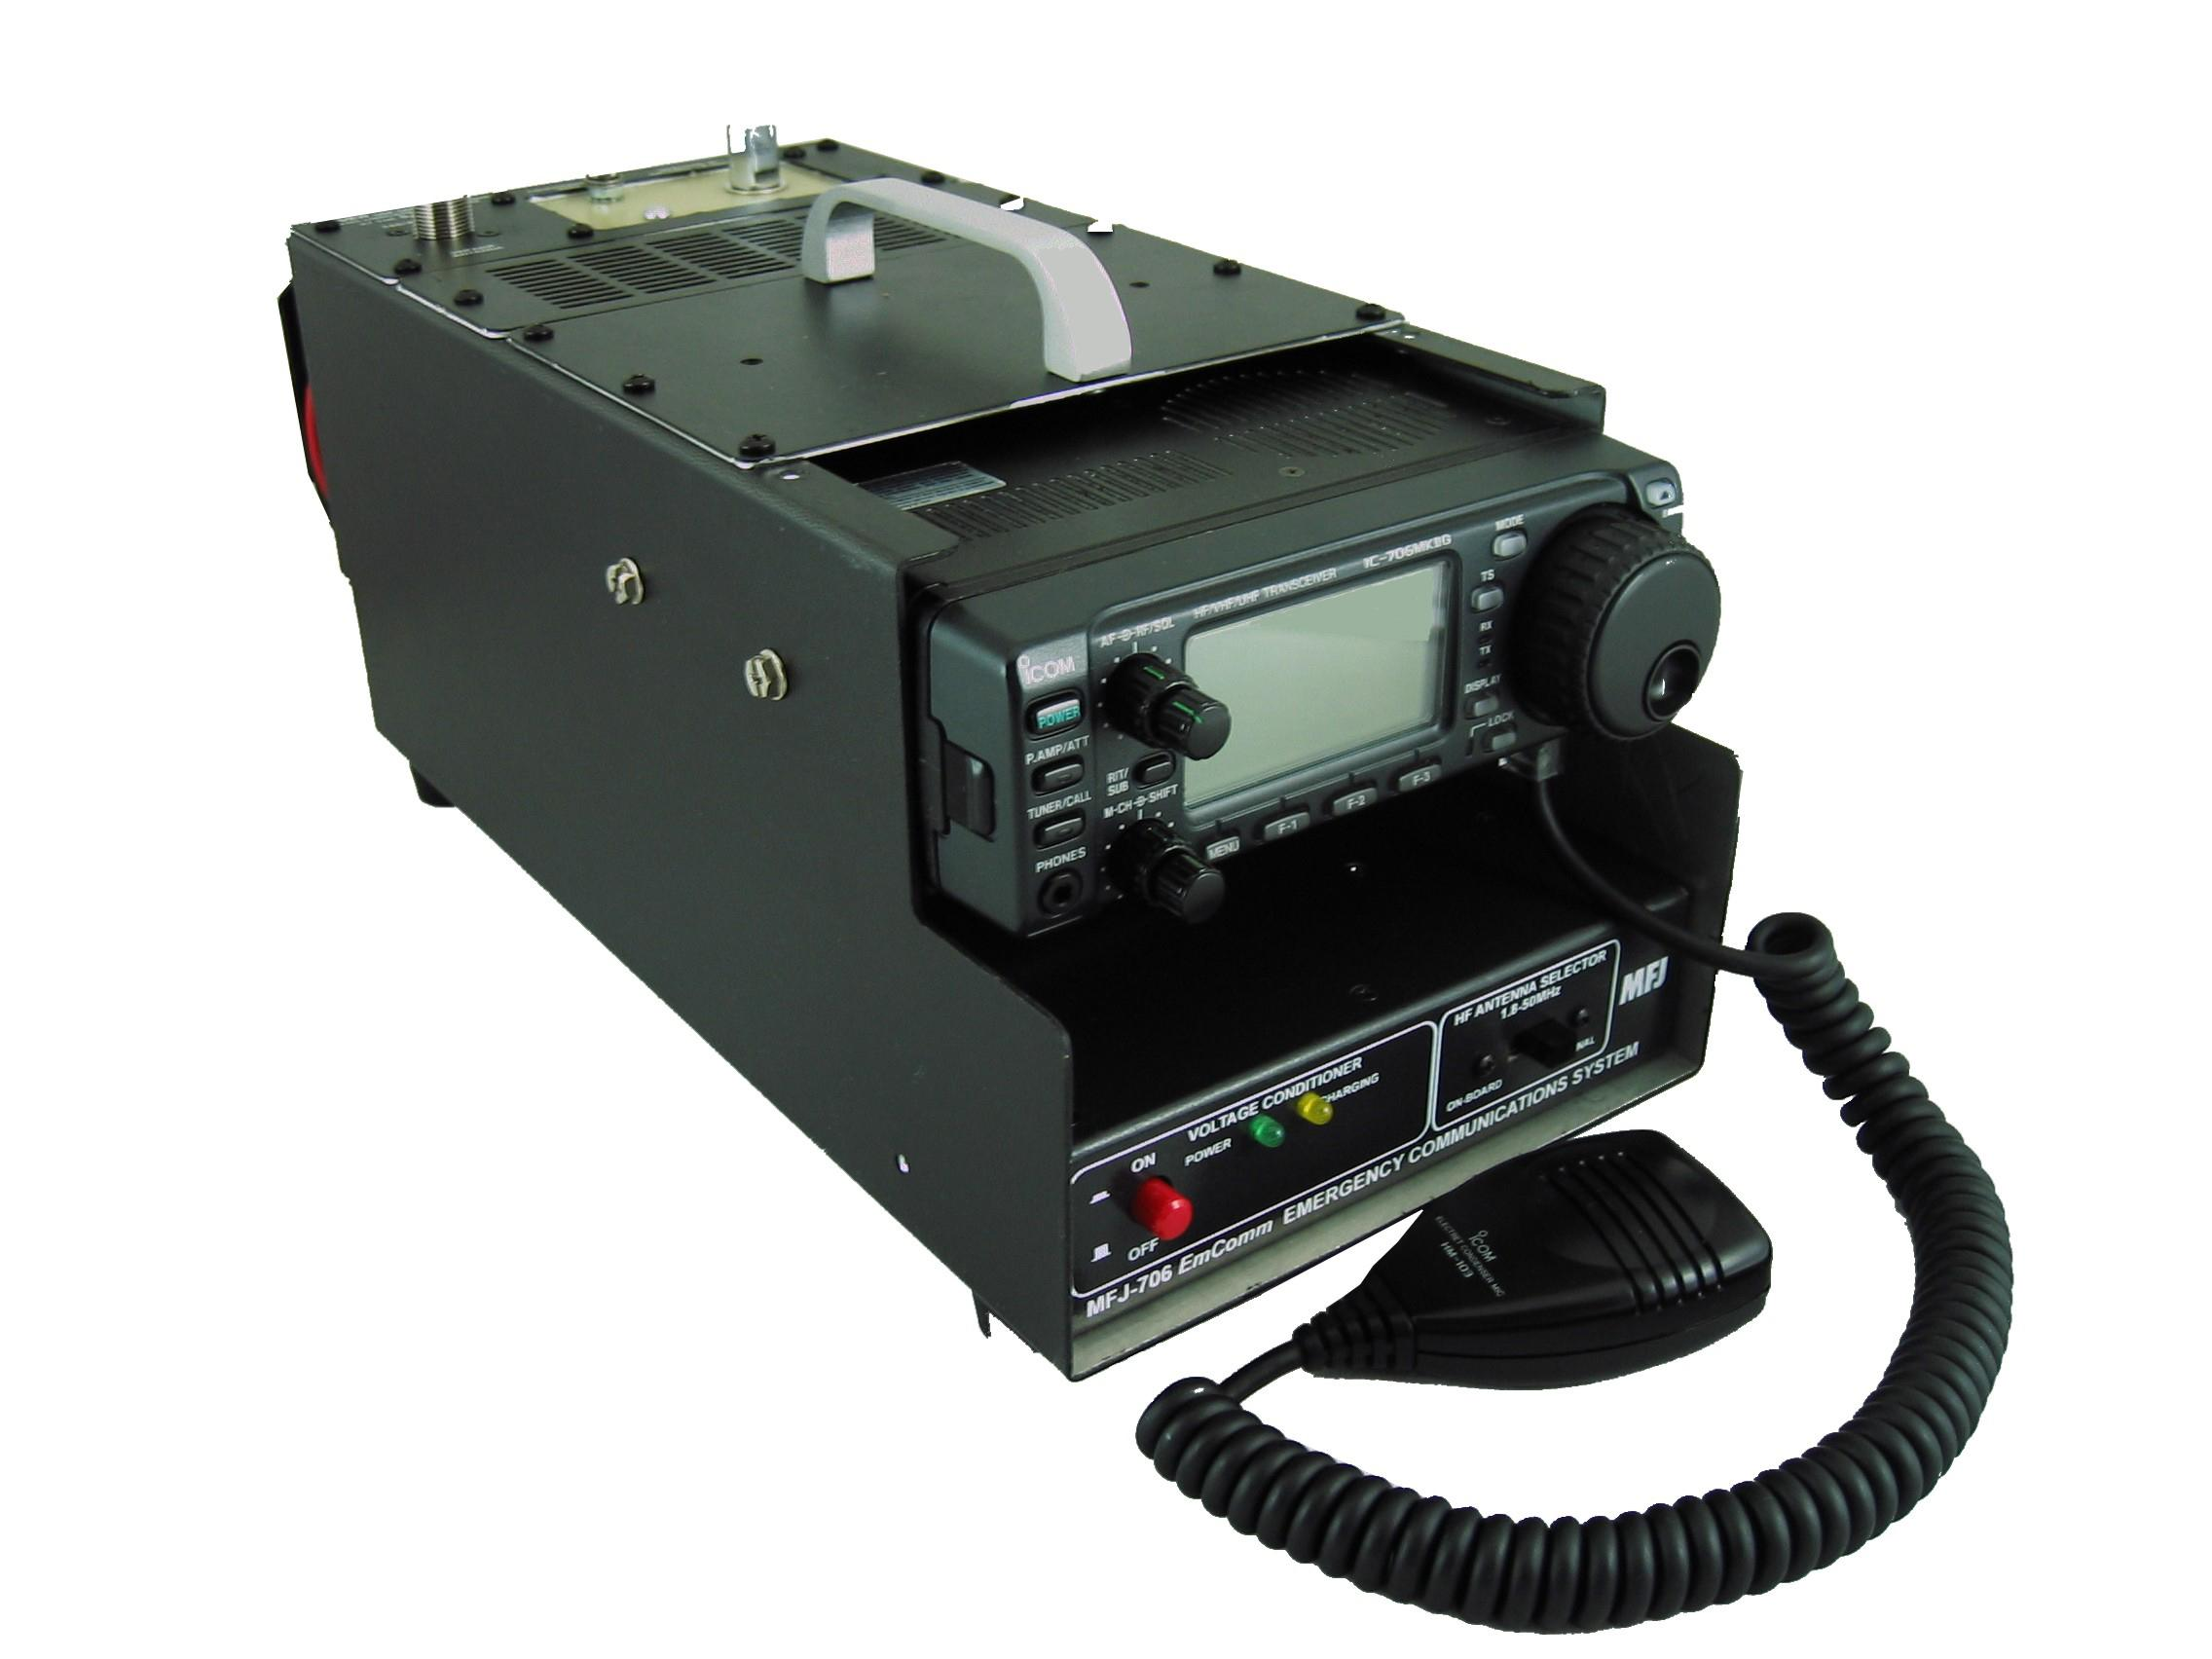 MFJ-706 PORT/MOBILE GRAB-AND-GO EMCOMM, FOR IC706